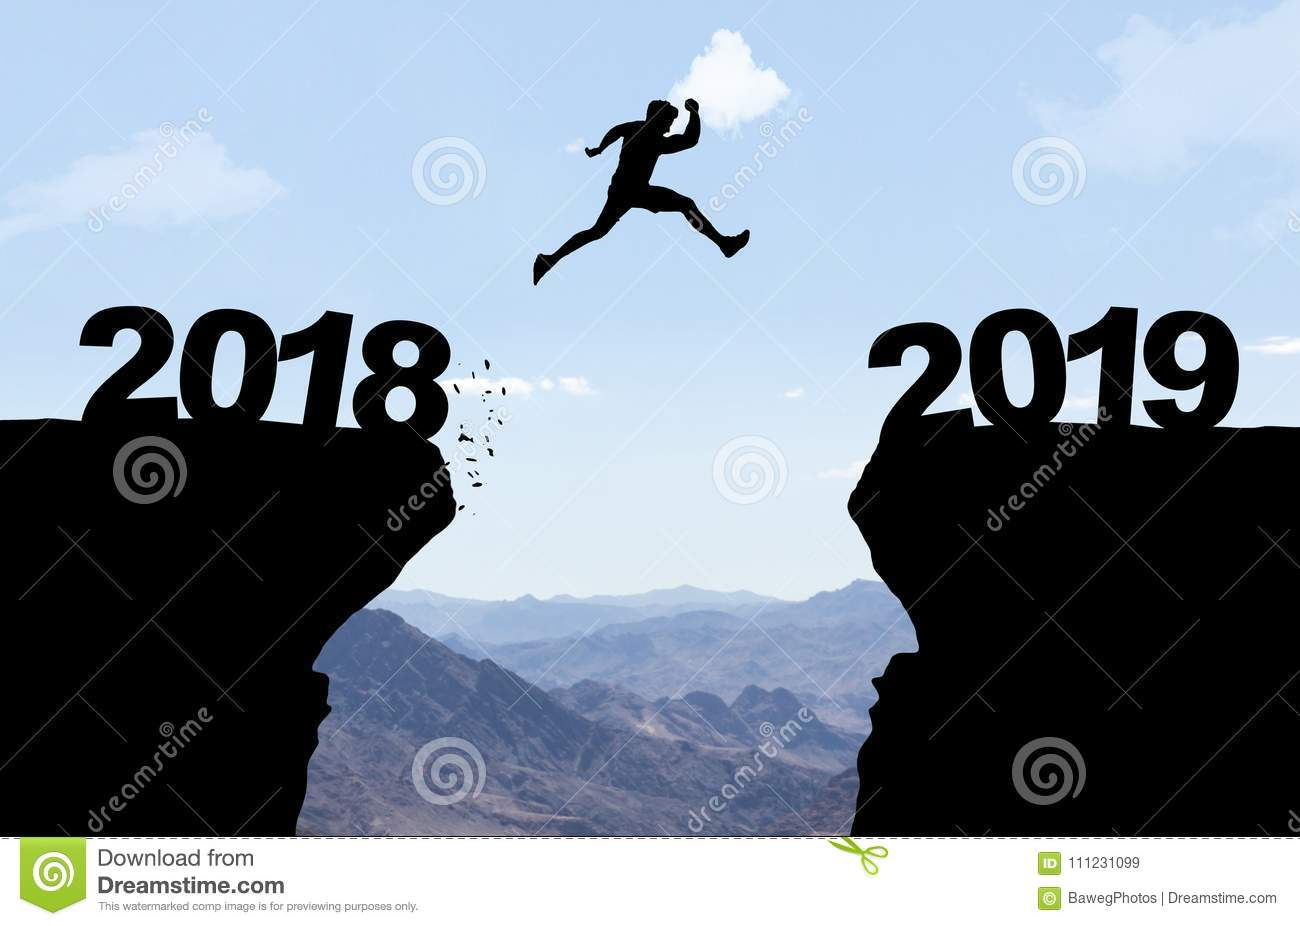 Man jumping over abyss with text 2018/2019